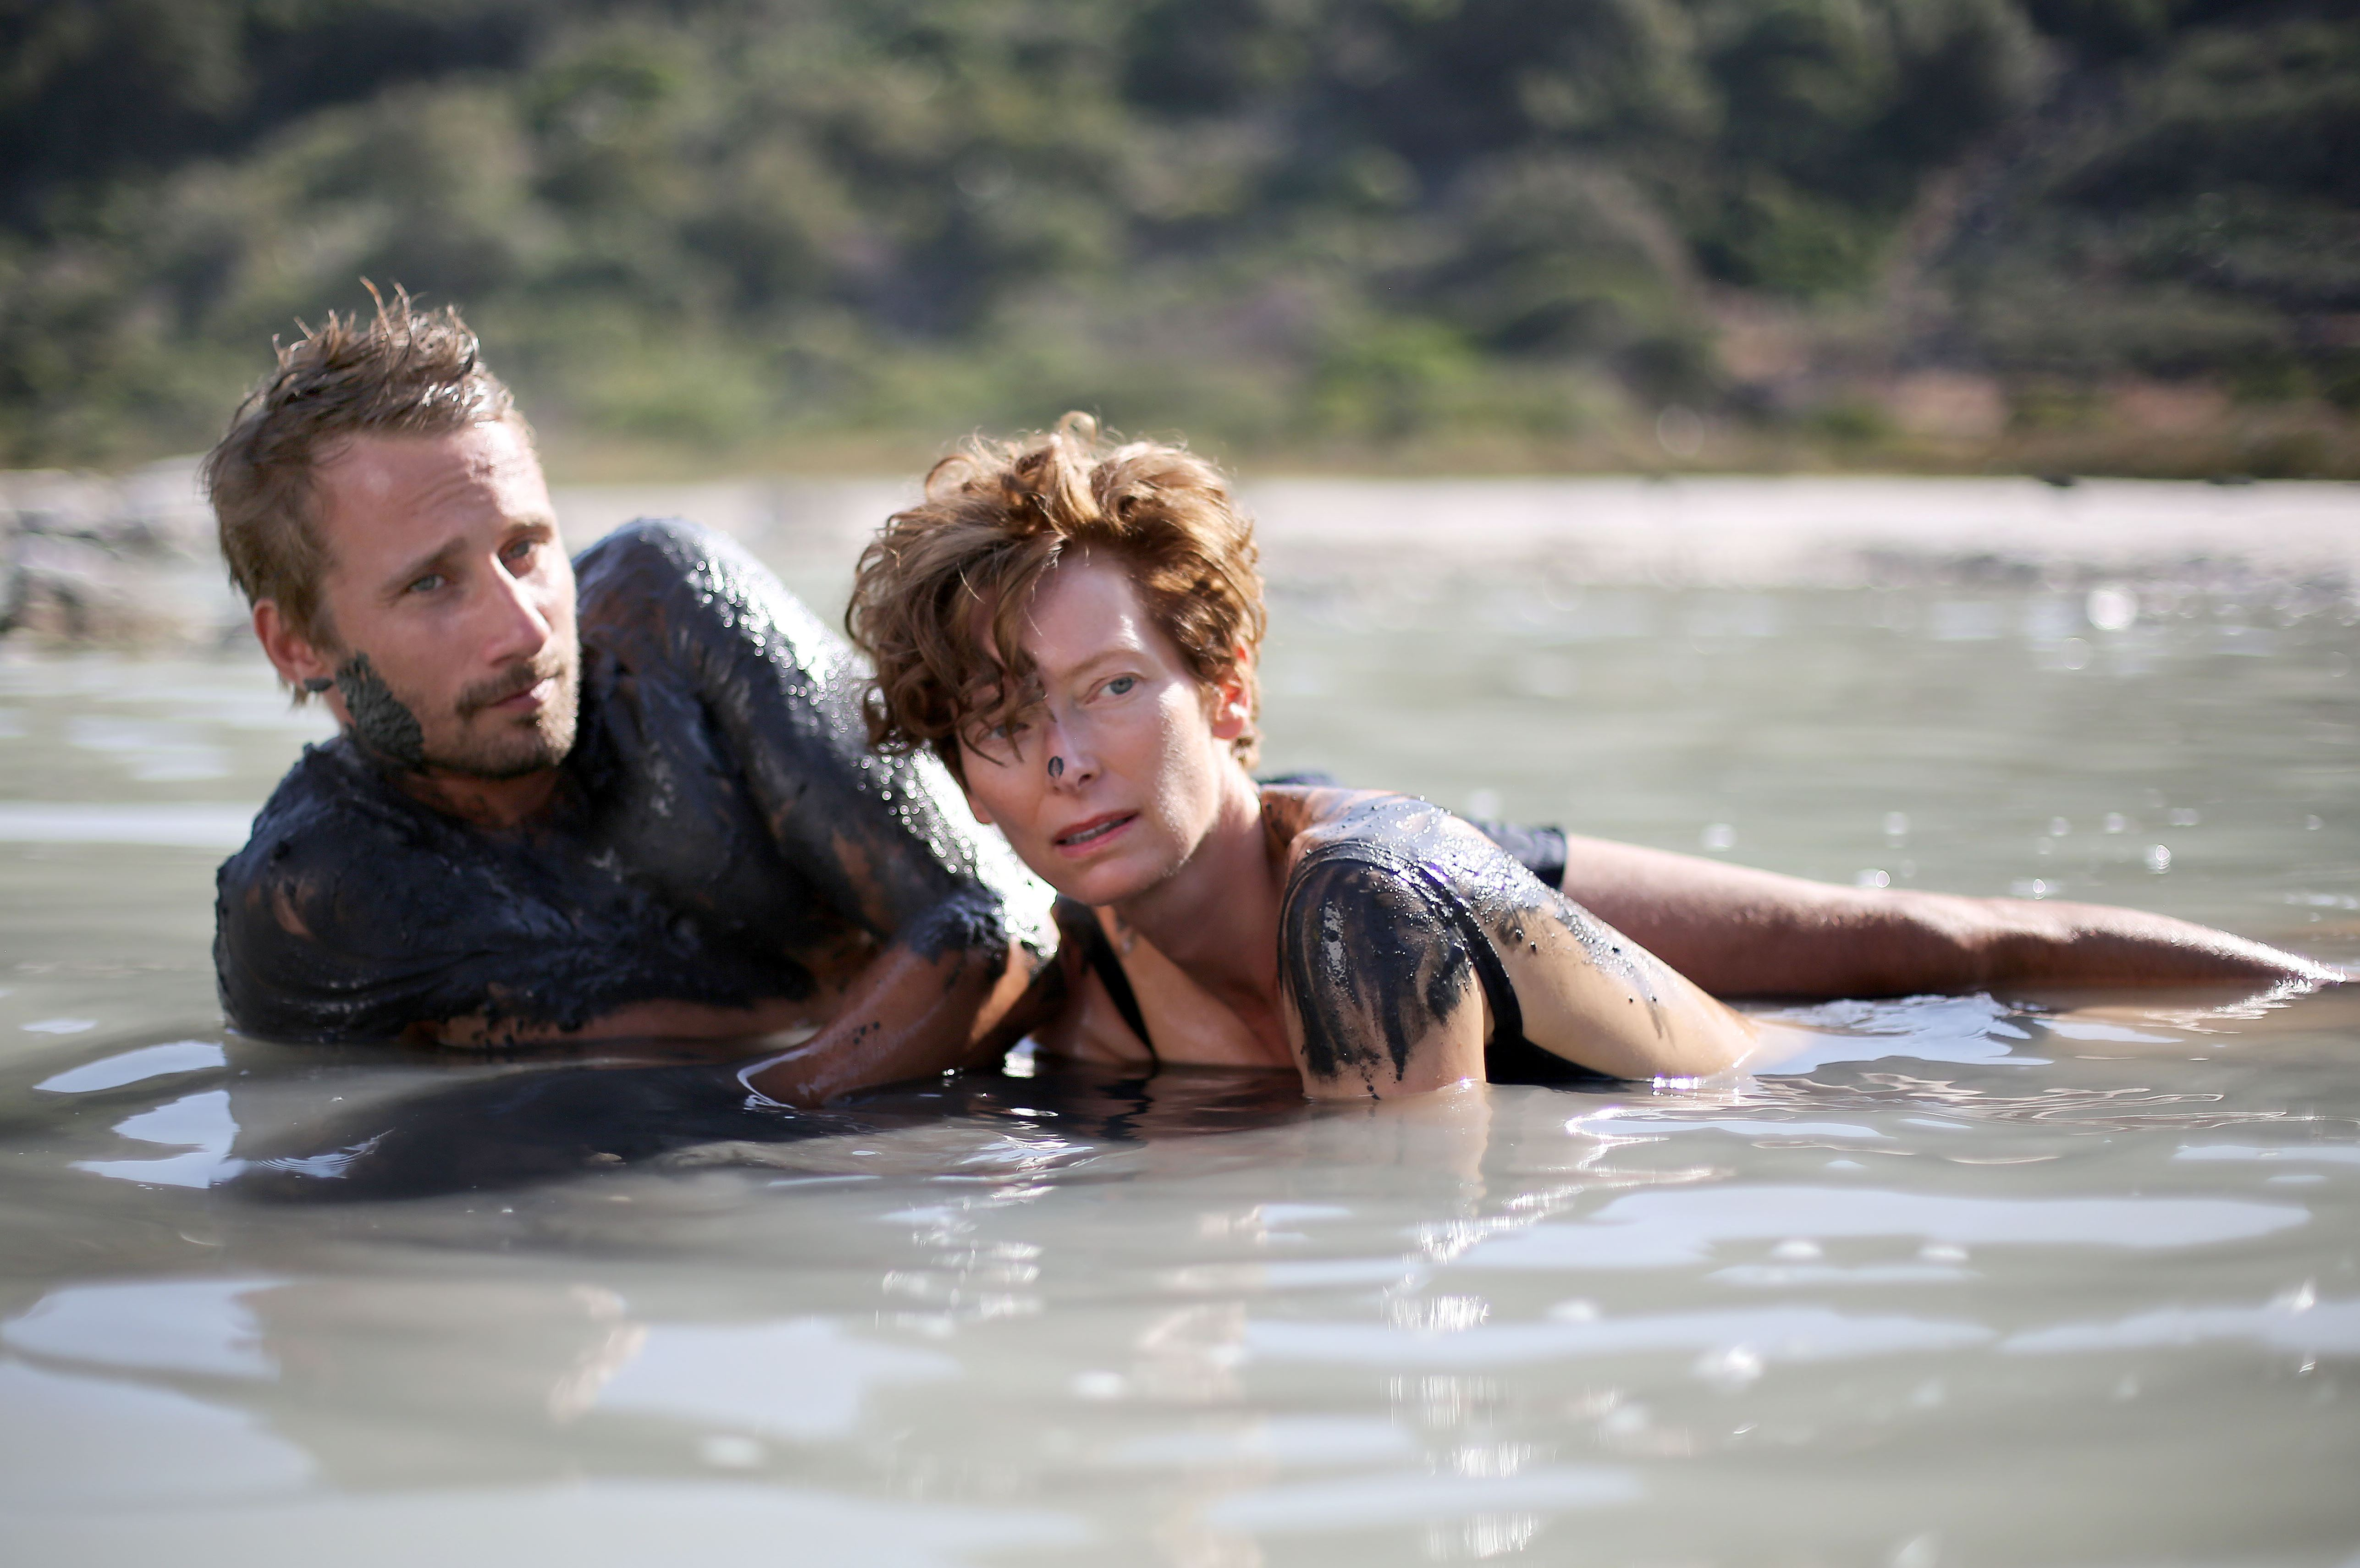 Movie review 39 a bigger splash 39 rides wave of big acting for A bigger splash movie